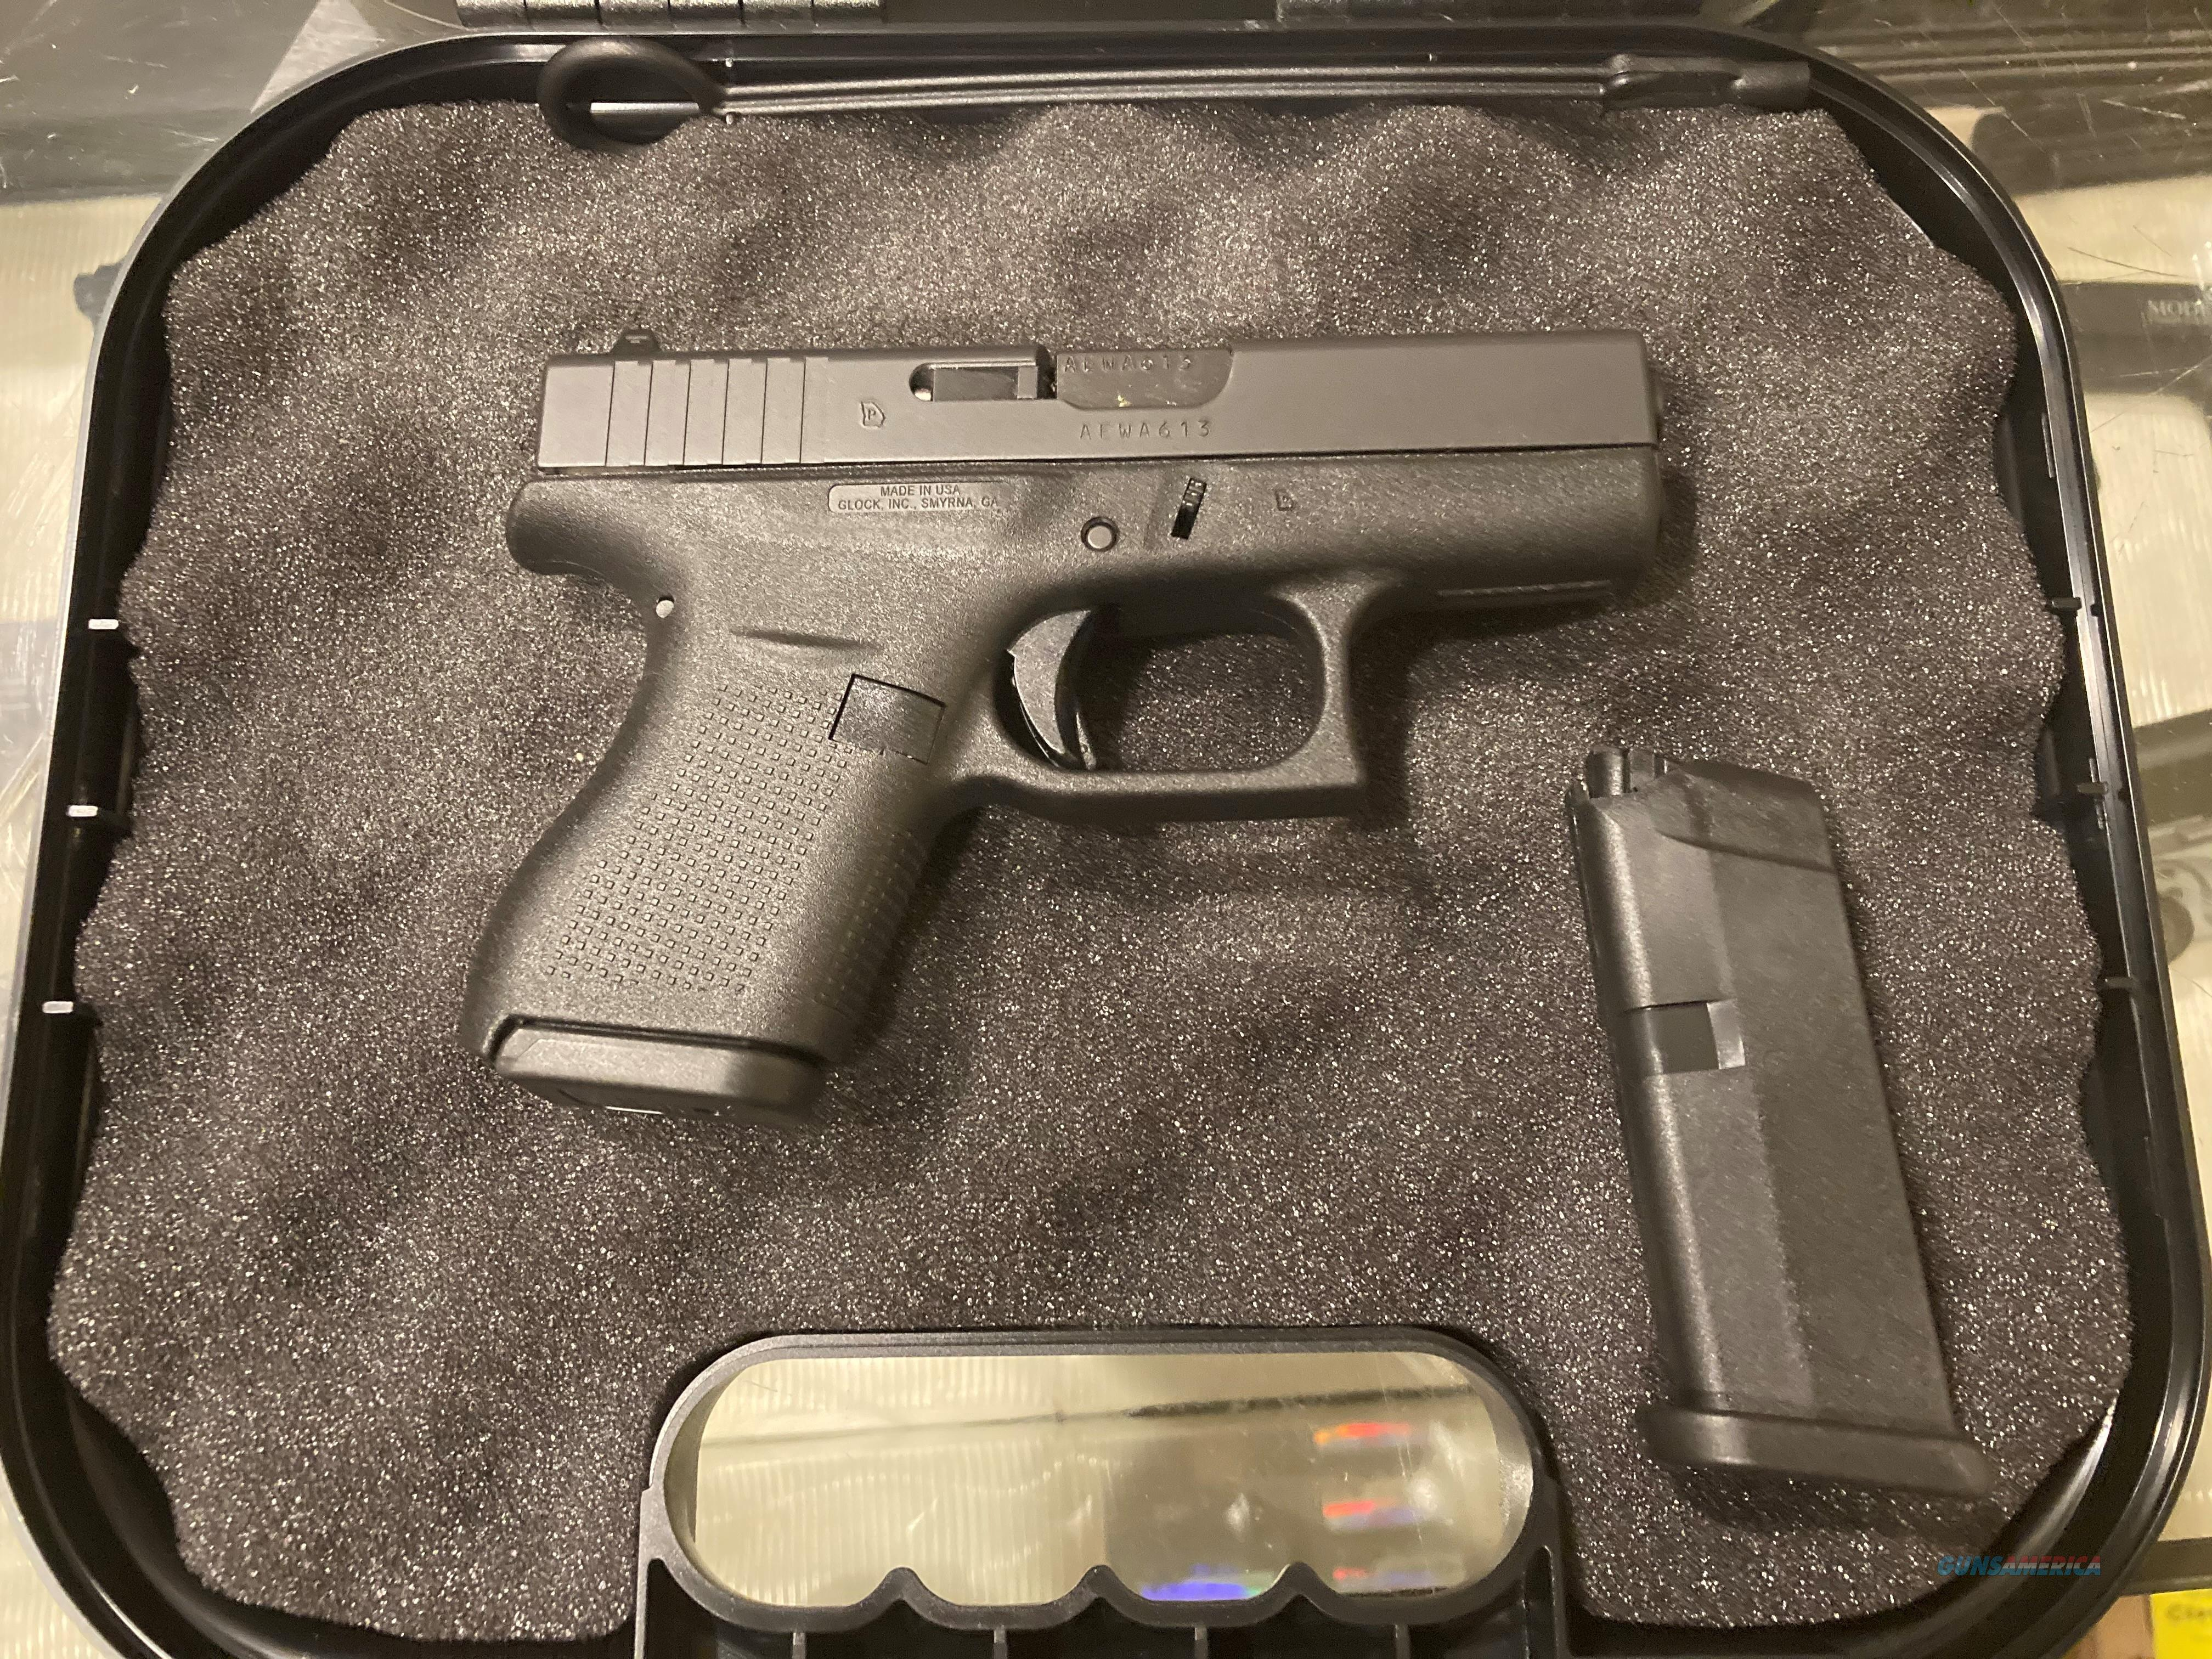 Glock 42 In 380 Acp G42 New In Hard Case No C For Sale